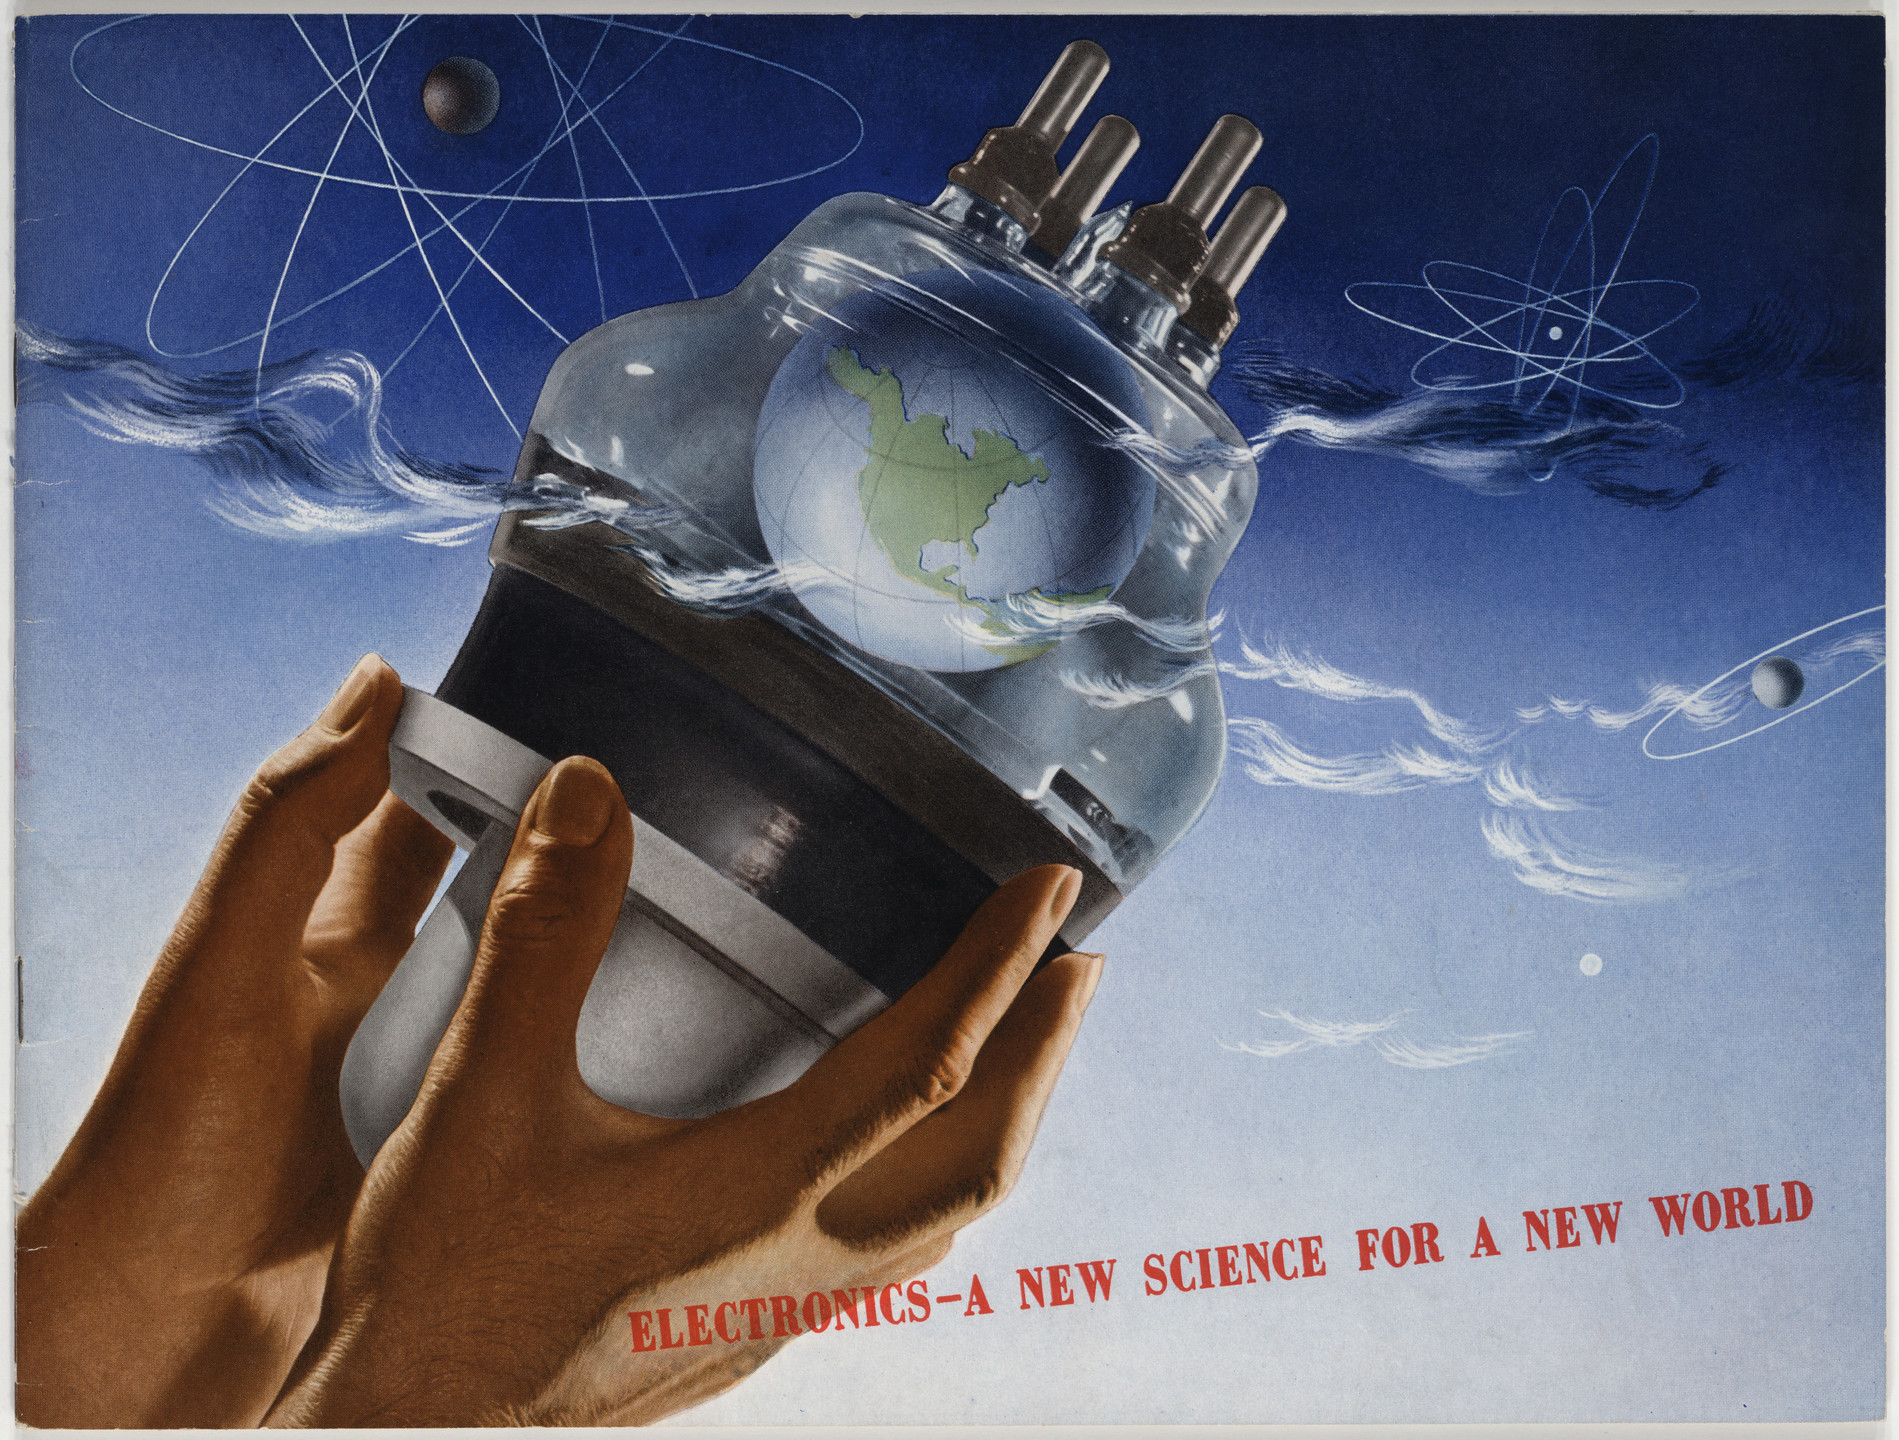 Herbert Bayer. Electronics—A New Science for a New World. 1942